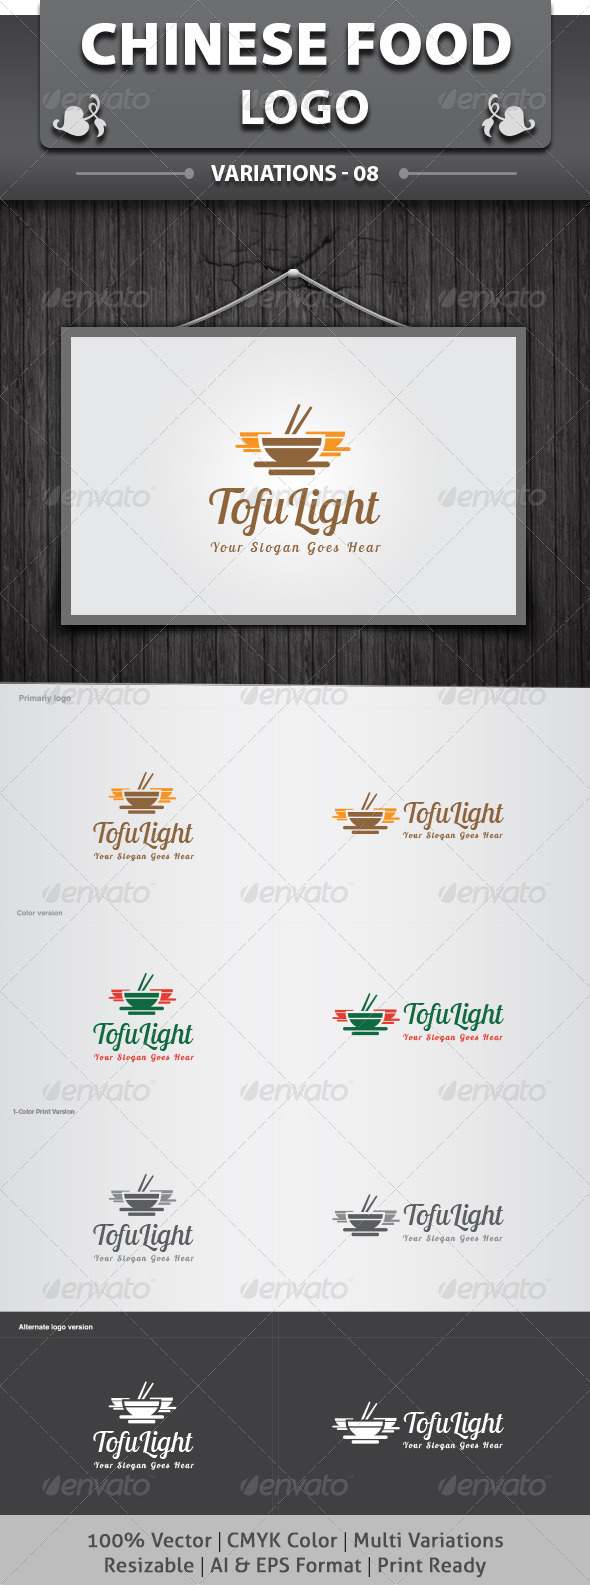 Chinese Food Logo - Food Logo Templates